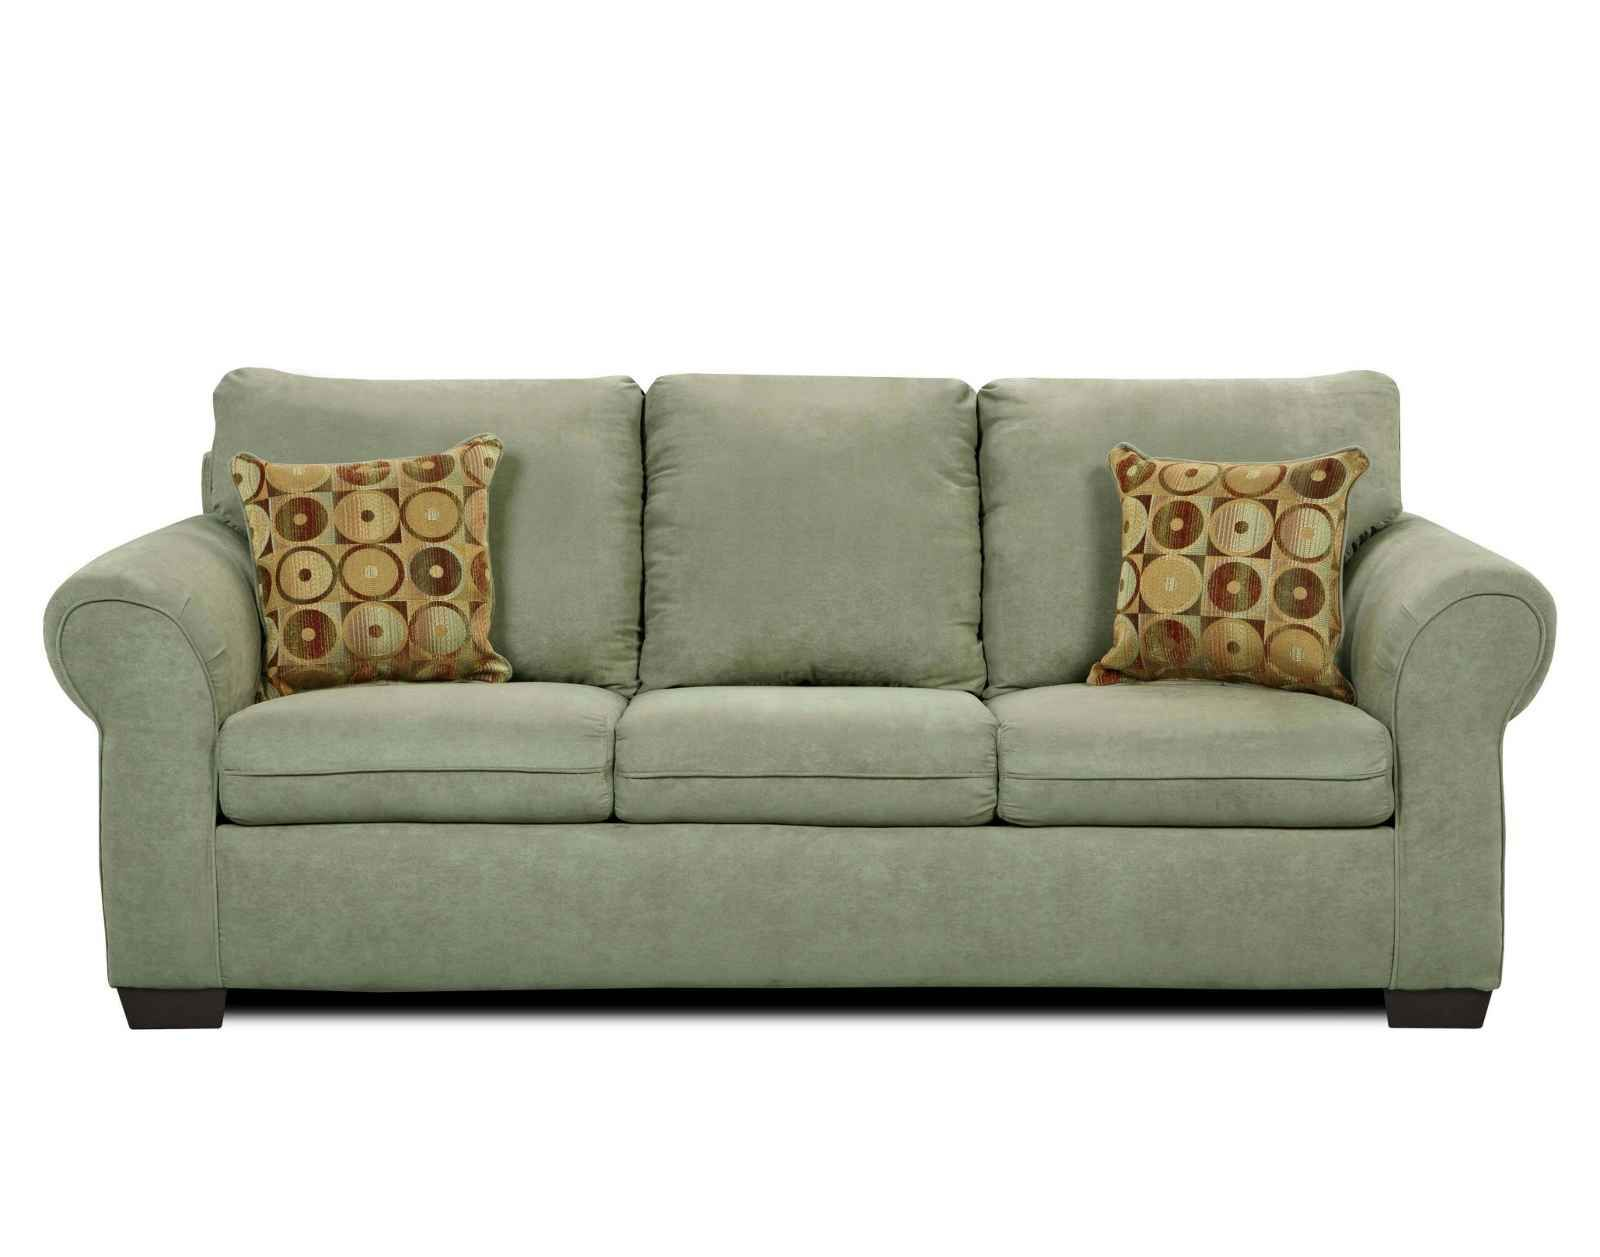 Amazing Pin By Sofacouchs On Sofas Couches Cheap Sofas Couch Beatyapartments Chair Design Images Beatyapartmentscom